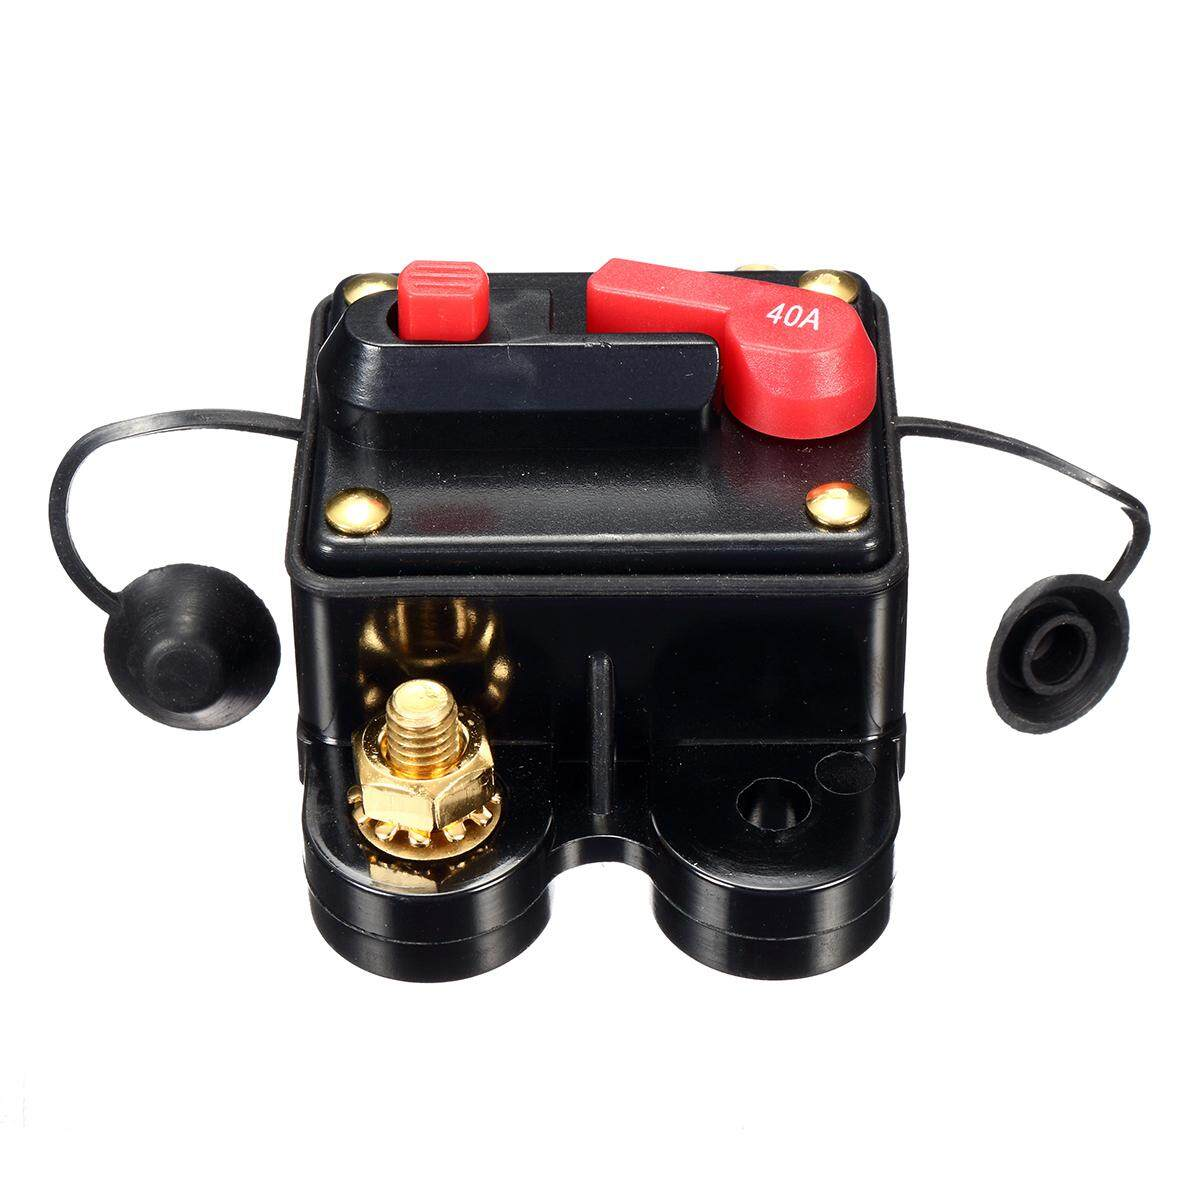 2pcs Waterproof 40 Amp Manual Reset Circuit Breaker 12v/24v Car Auto Boat Fuse By Moonbeam.